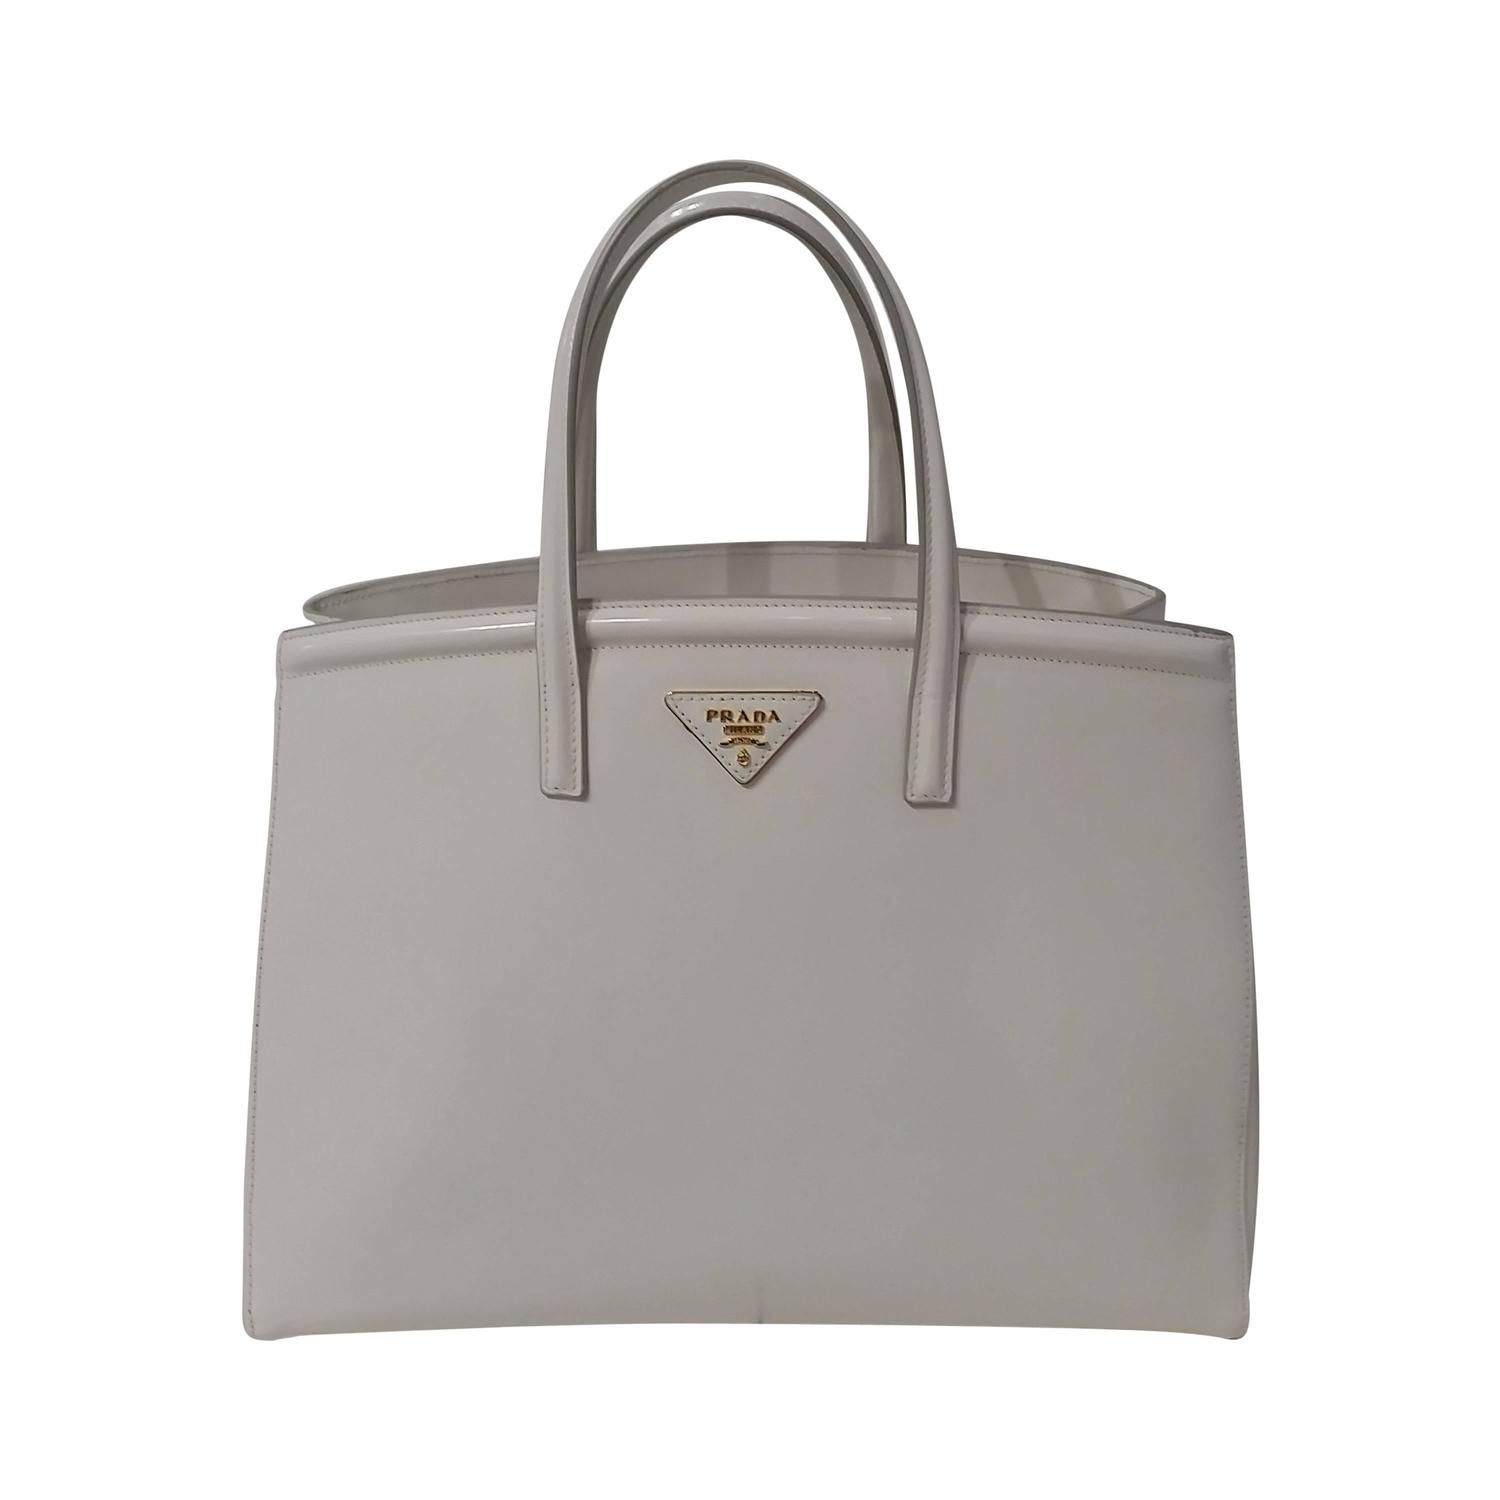 2000s Prada white leather bag For Sale at 1stdibs